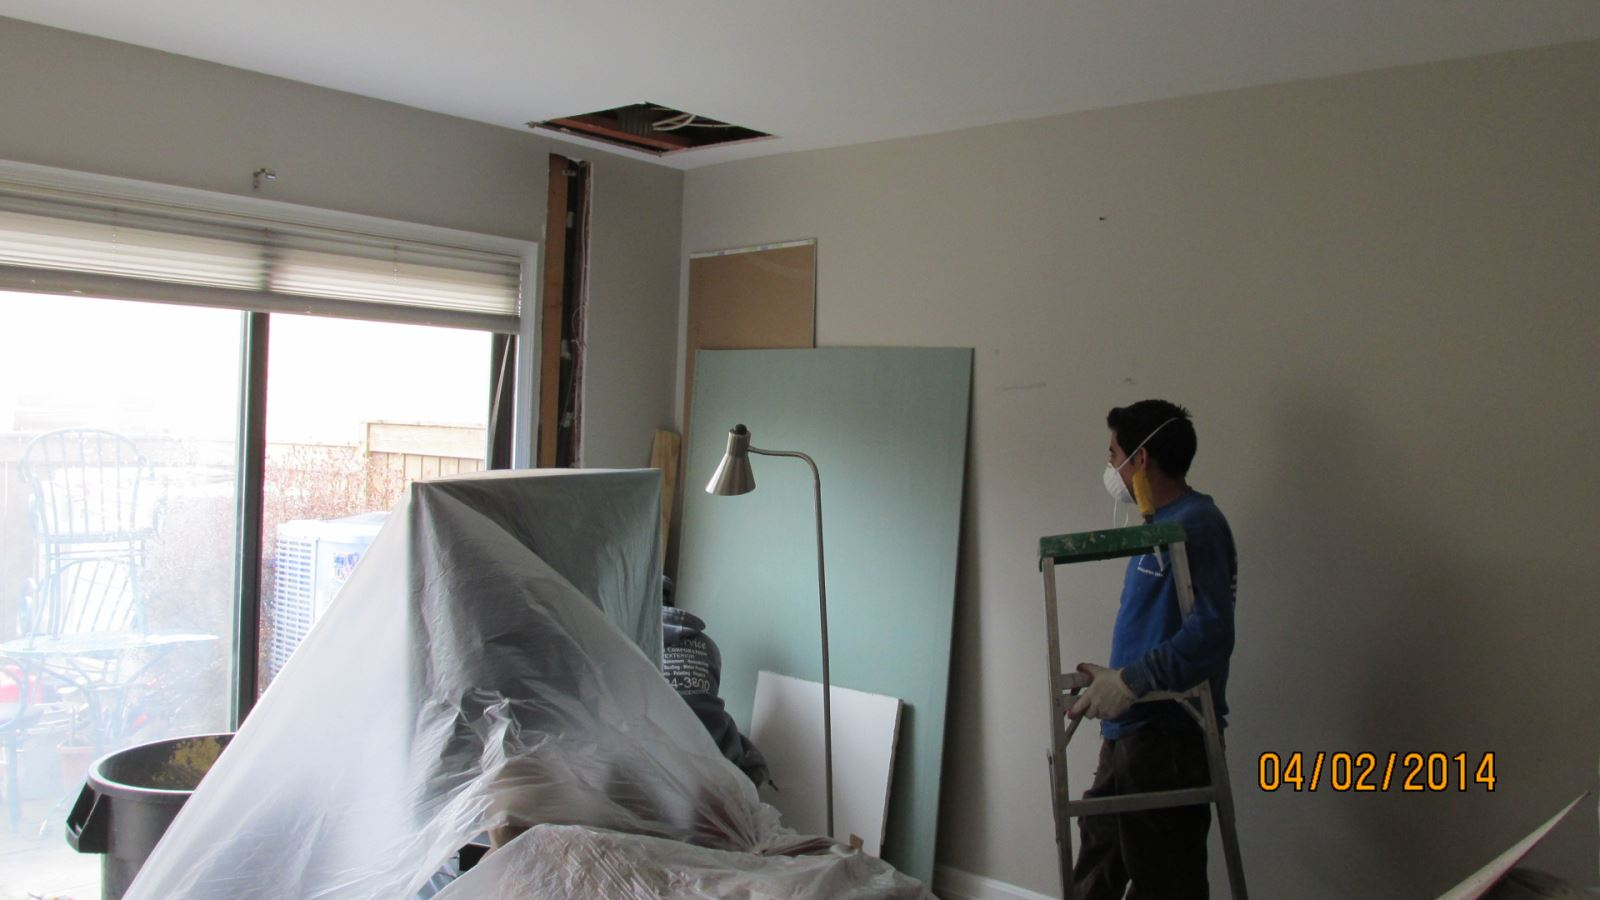 Workers installing heat pump